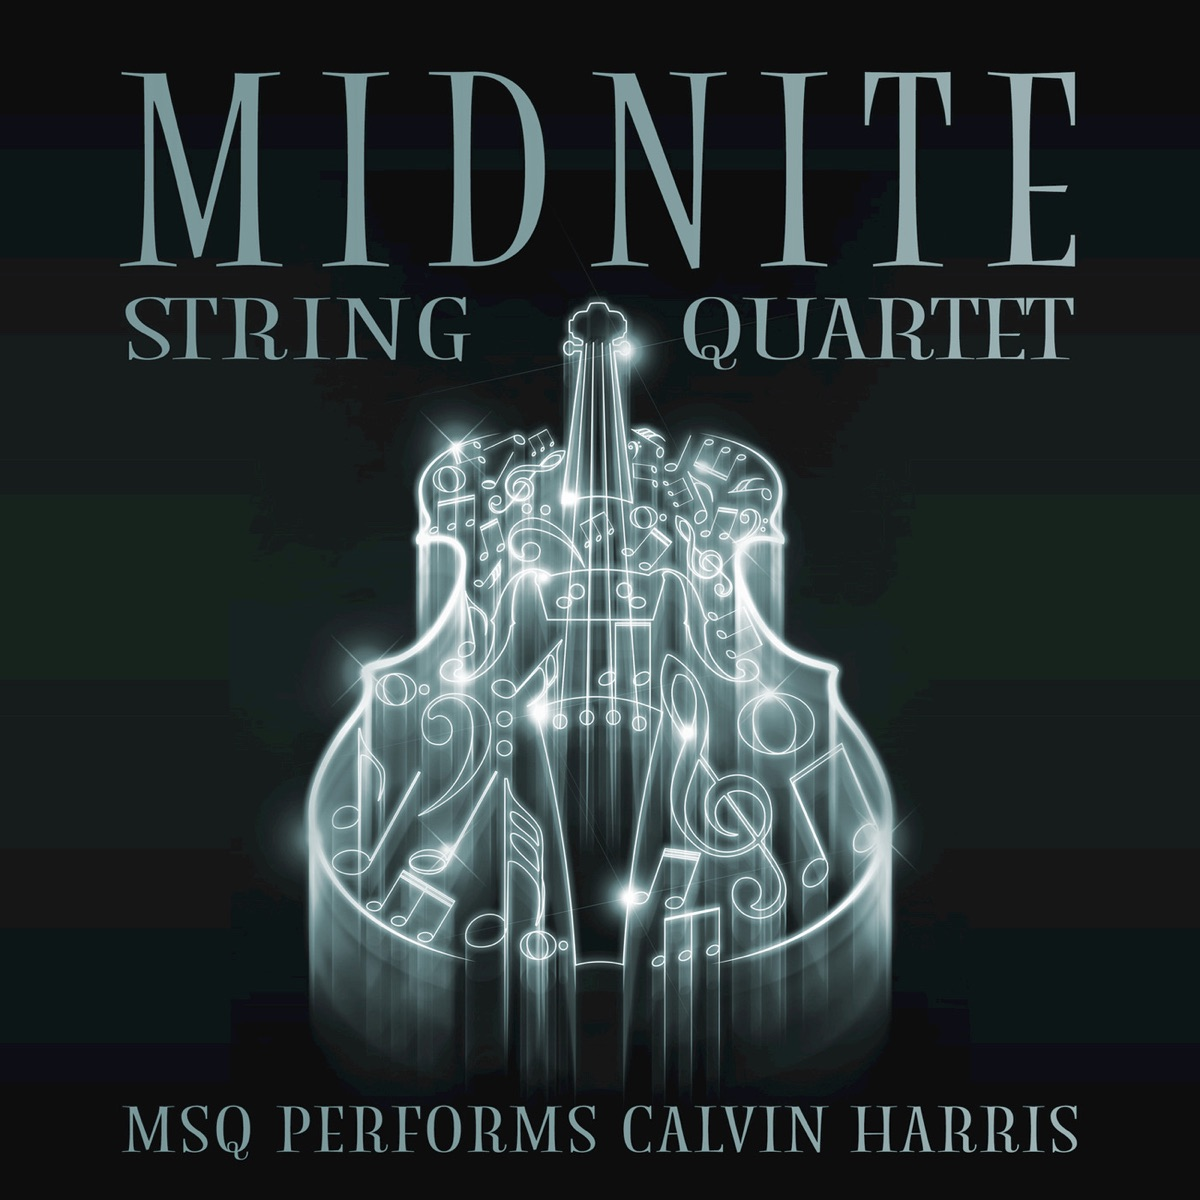 MSQ Performs Calvin Harris Midnite String Quartet CD cover